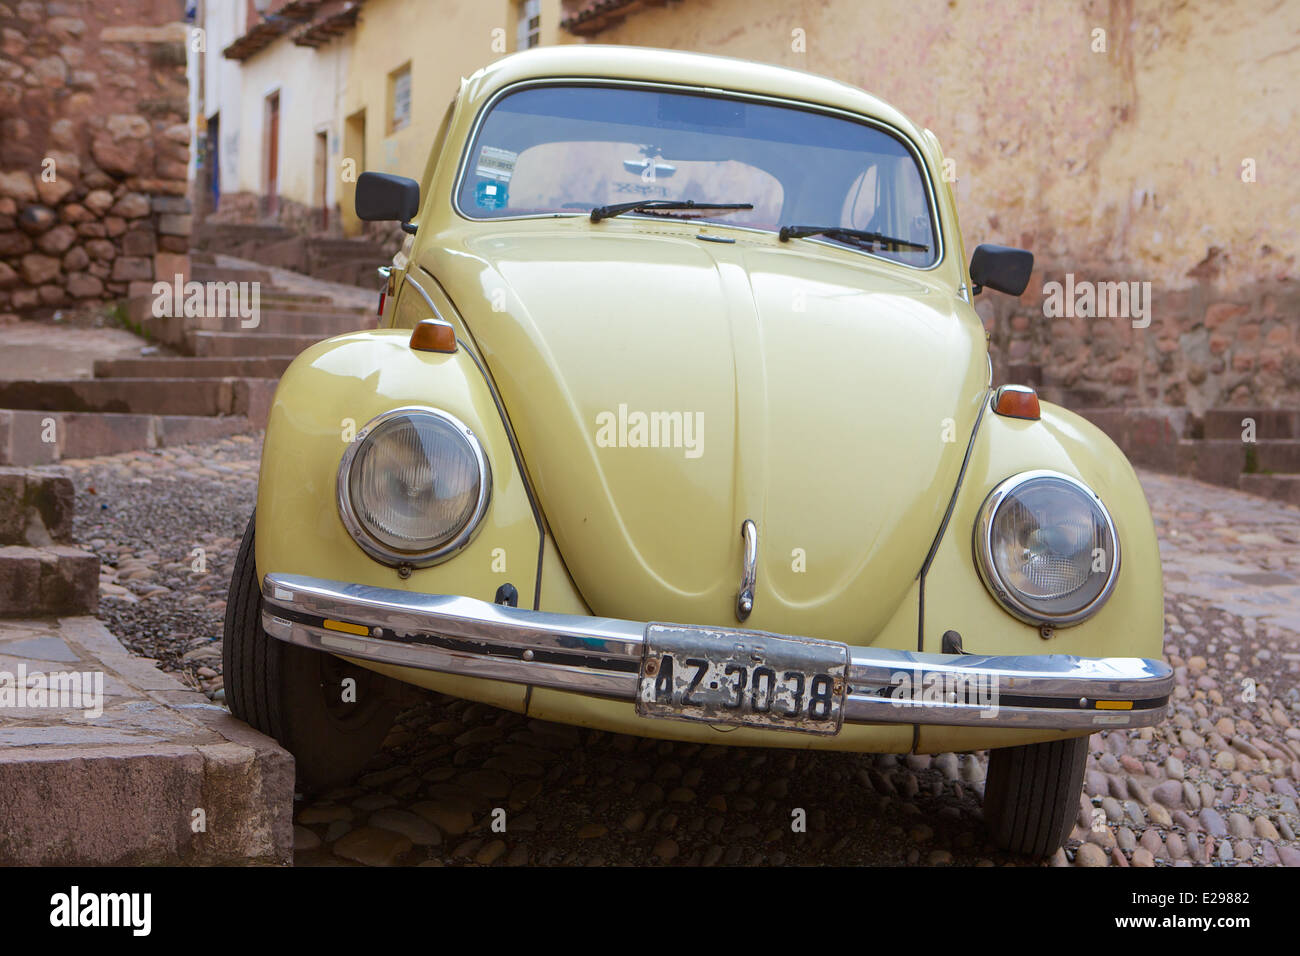 A pretty street scene with yellow vw bug on a steep street in Cusco, Peru, ancient seat of the Inca Empire high - Stock Image